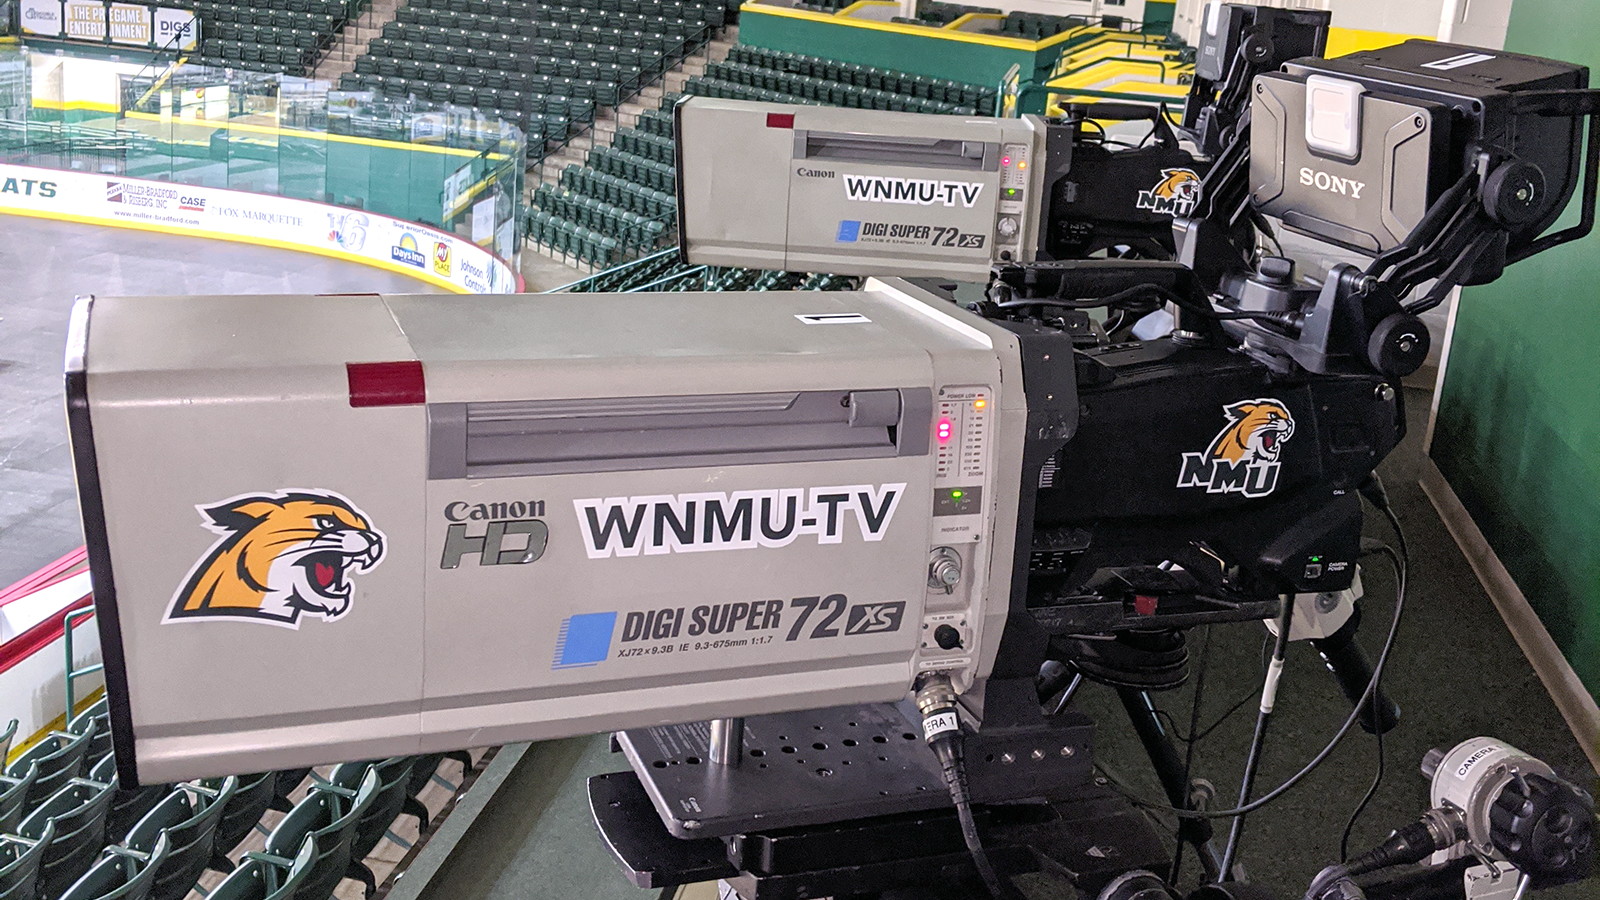 WNMU switcher at the Barry Events Center